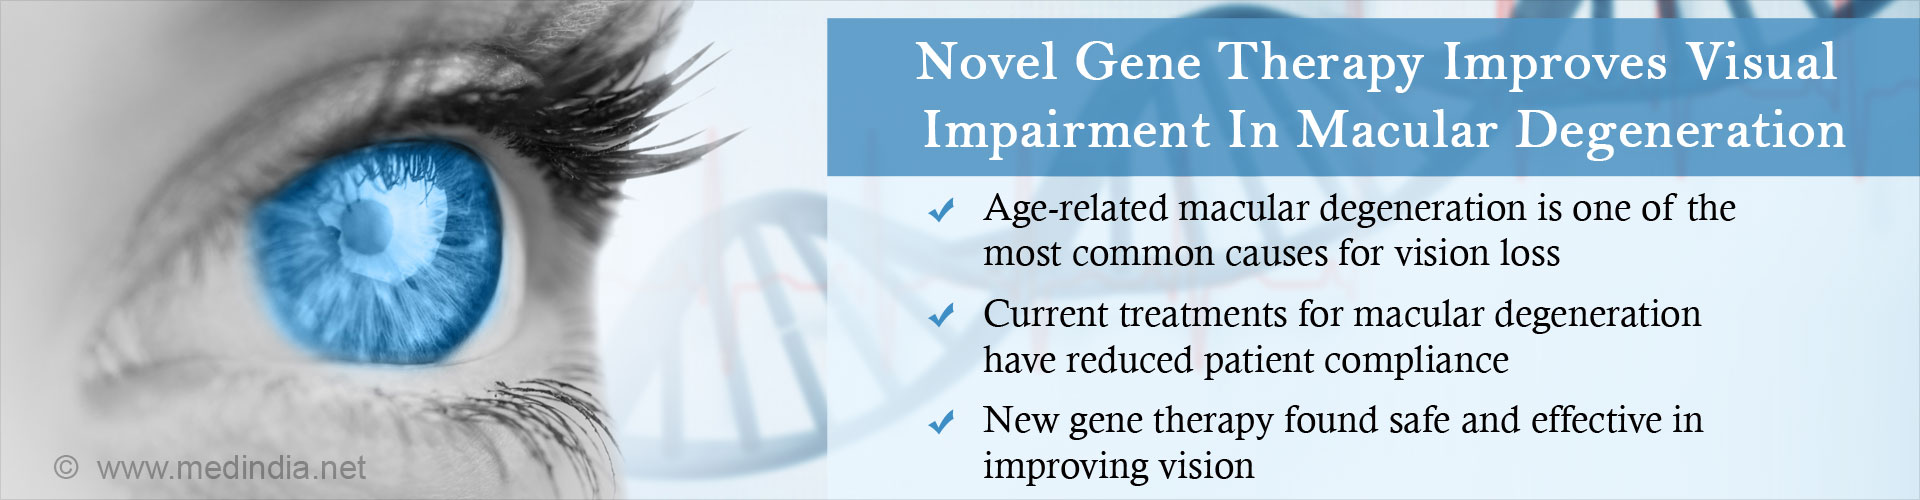 Novel gene therapy improves visual impairment in macular degeneration - age-related macular degeneration is one of the most common causes for vision loss - current treatments for macular degeneration have reduced patient compliance - New gene therapy found safe and effective